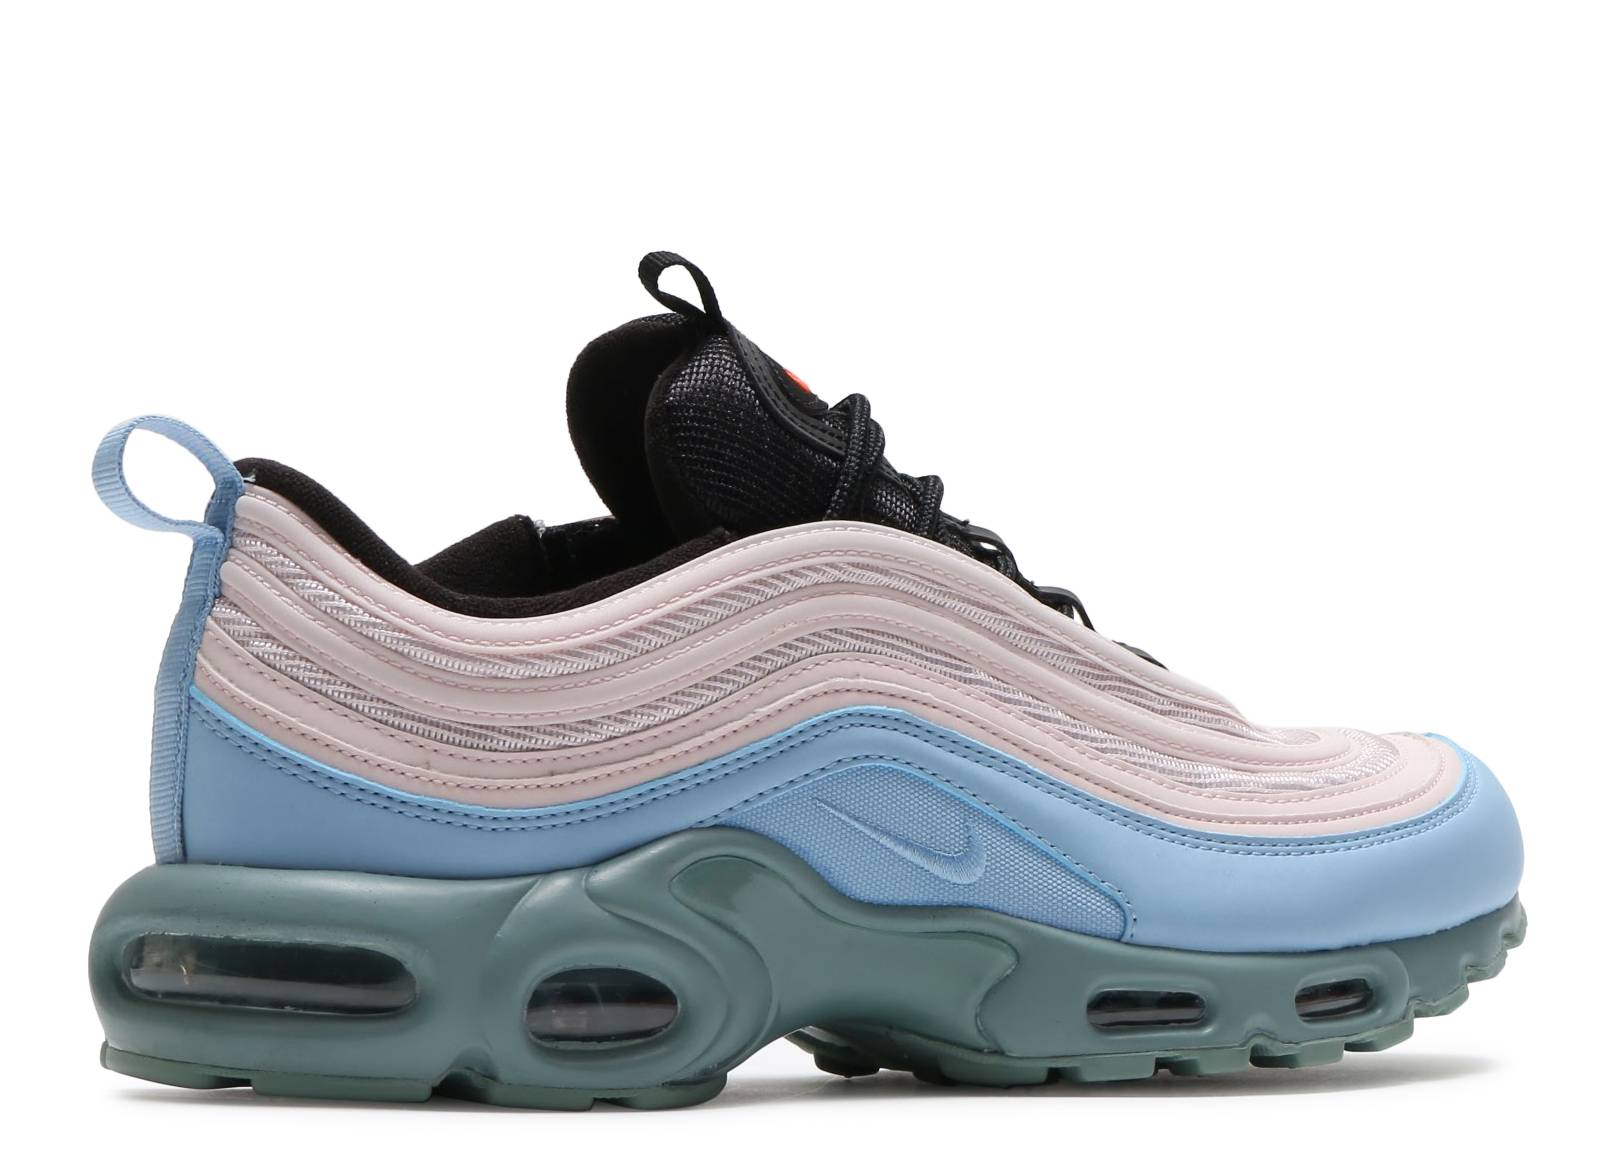 outlet store 8cb3e 13178 AIR MAX PLUS   97 - Nike - ah8143 300 - mica green barely rose-leche  blue-black   Flight Club